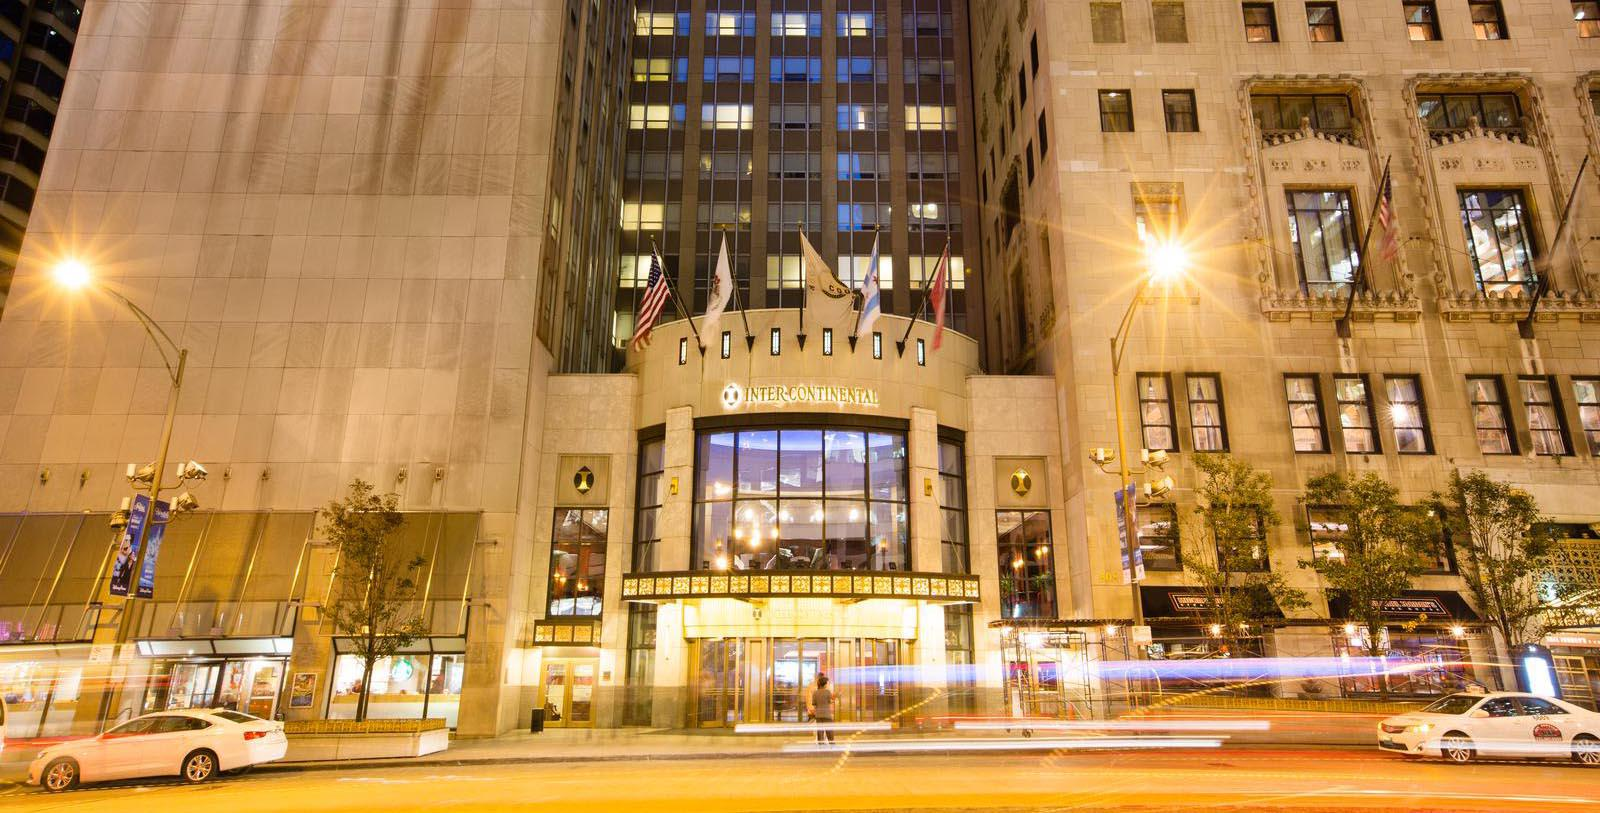 Image of Exterior at Night, InterContinental Chicago Magnificent Mile in Chicago, Illinois, 1929, Member of Historic Hotels of America, Special Offers, Discounted Rates, Families, Romantic Escape, Honeymoons, Anniversaries, Reunions